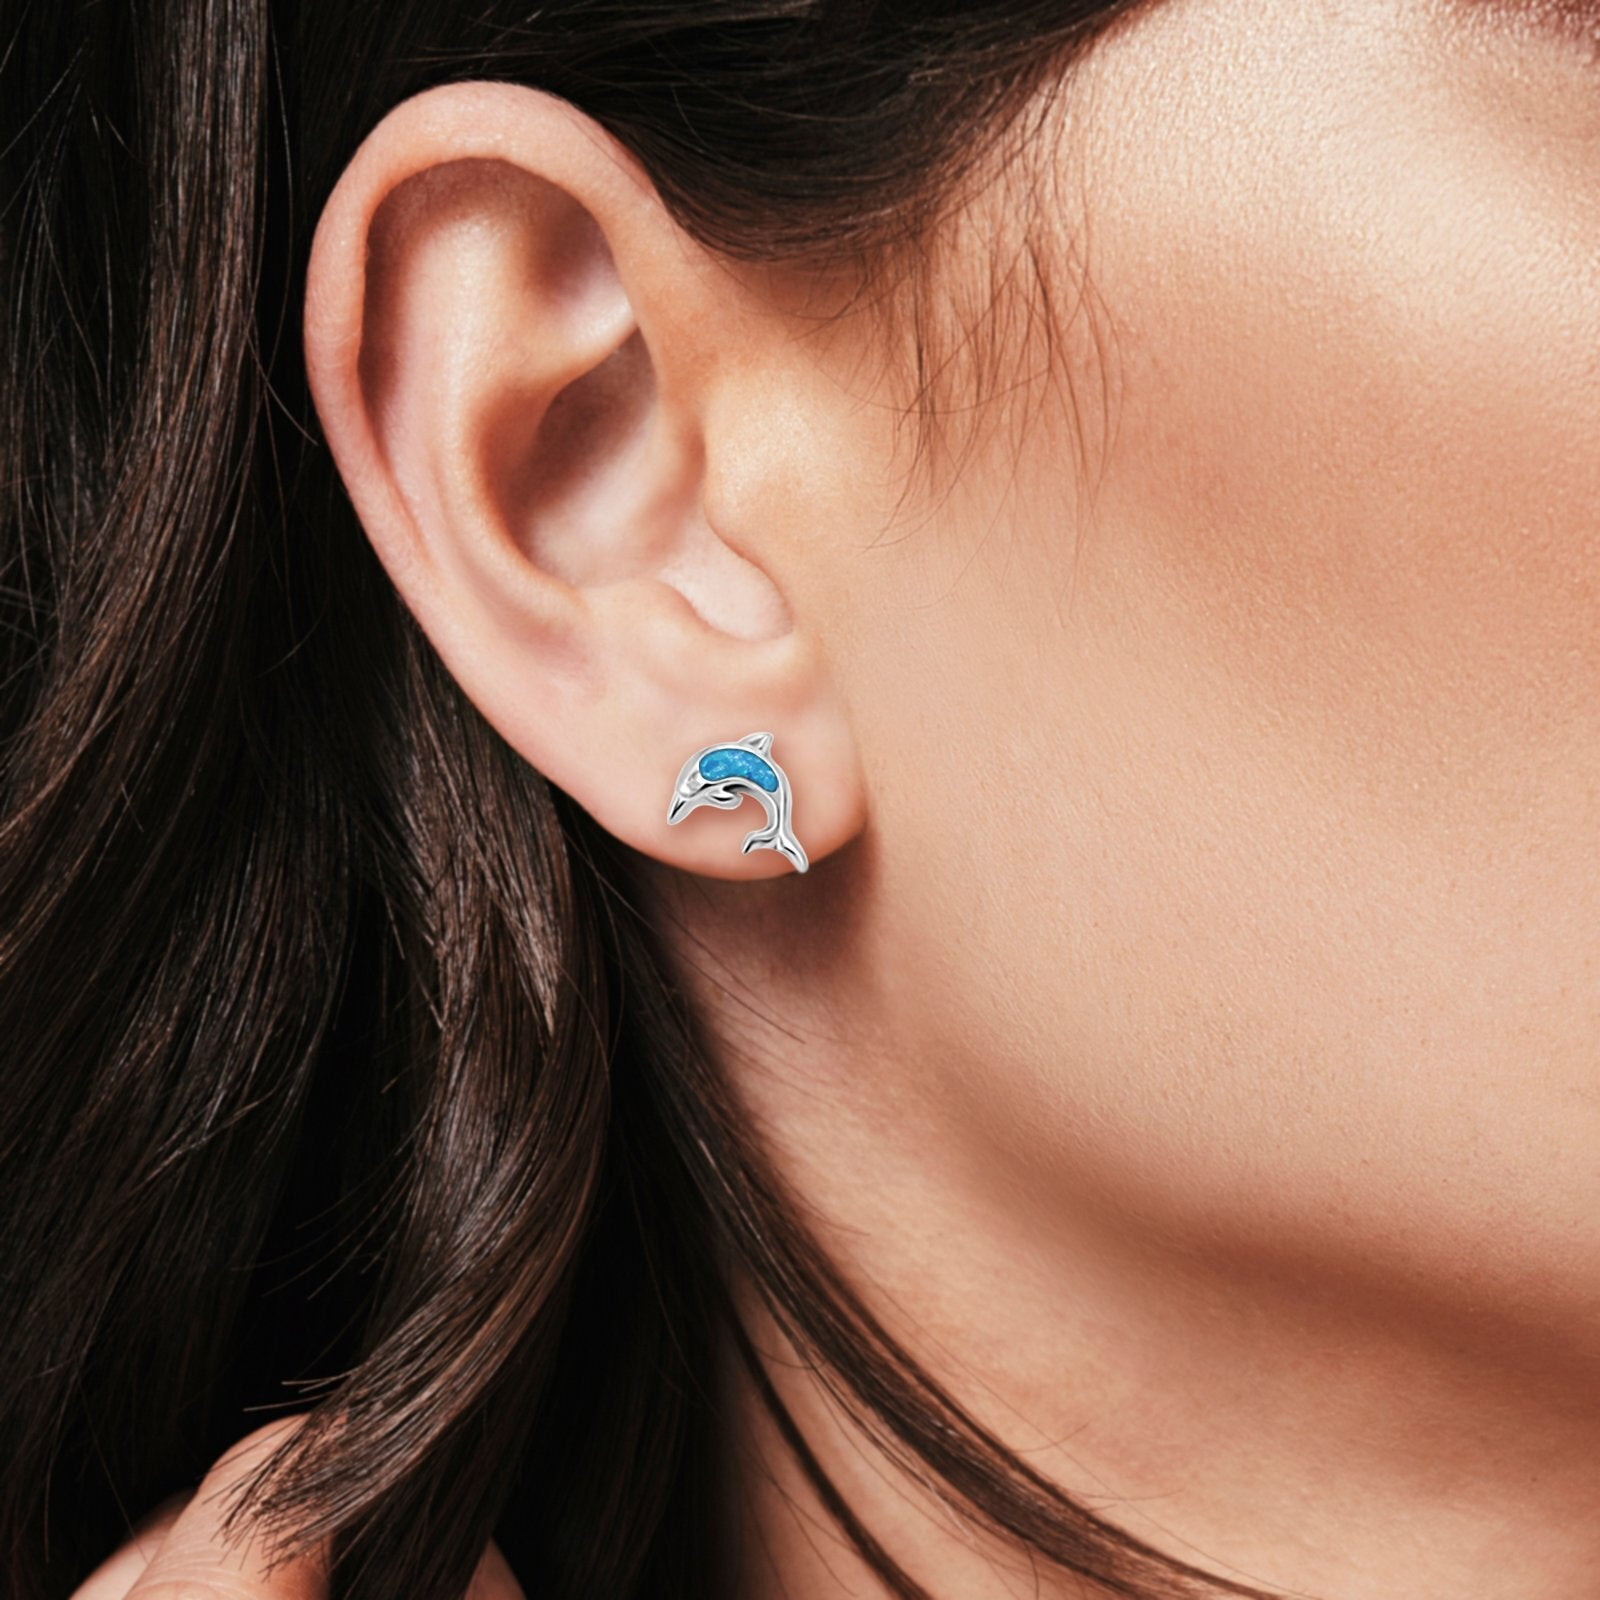 Dolphin Stud Earrings Lab Created Blue Opal 925 Sterling Silver